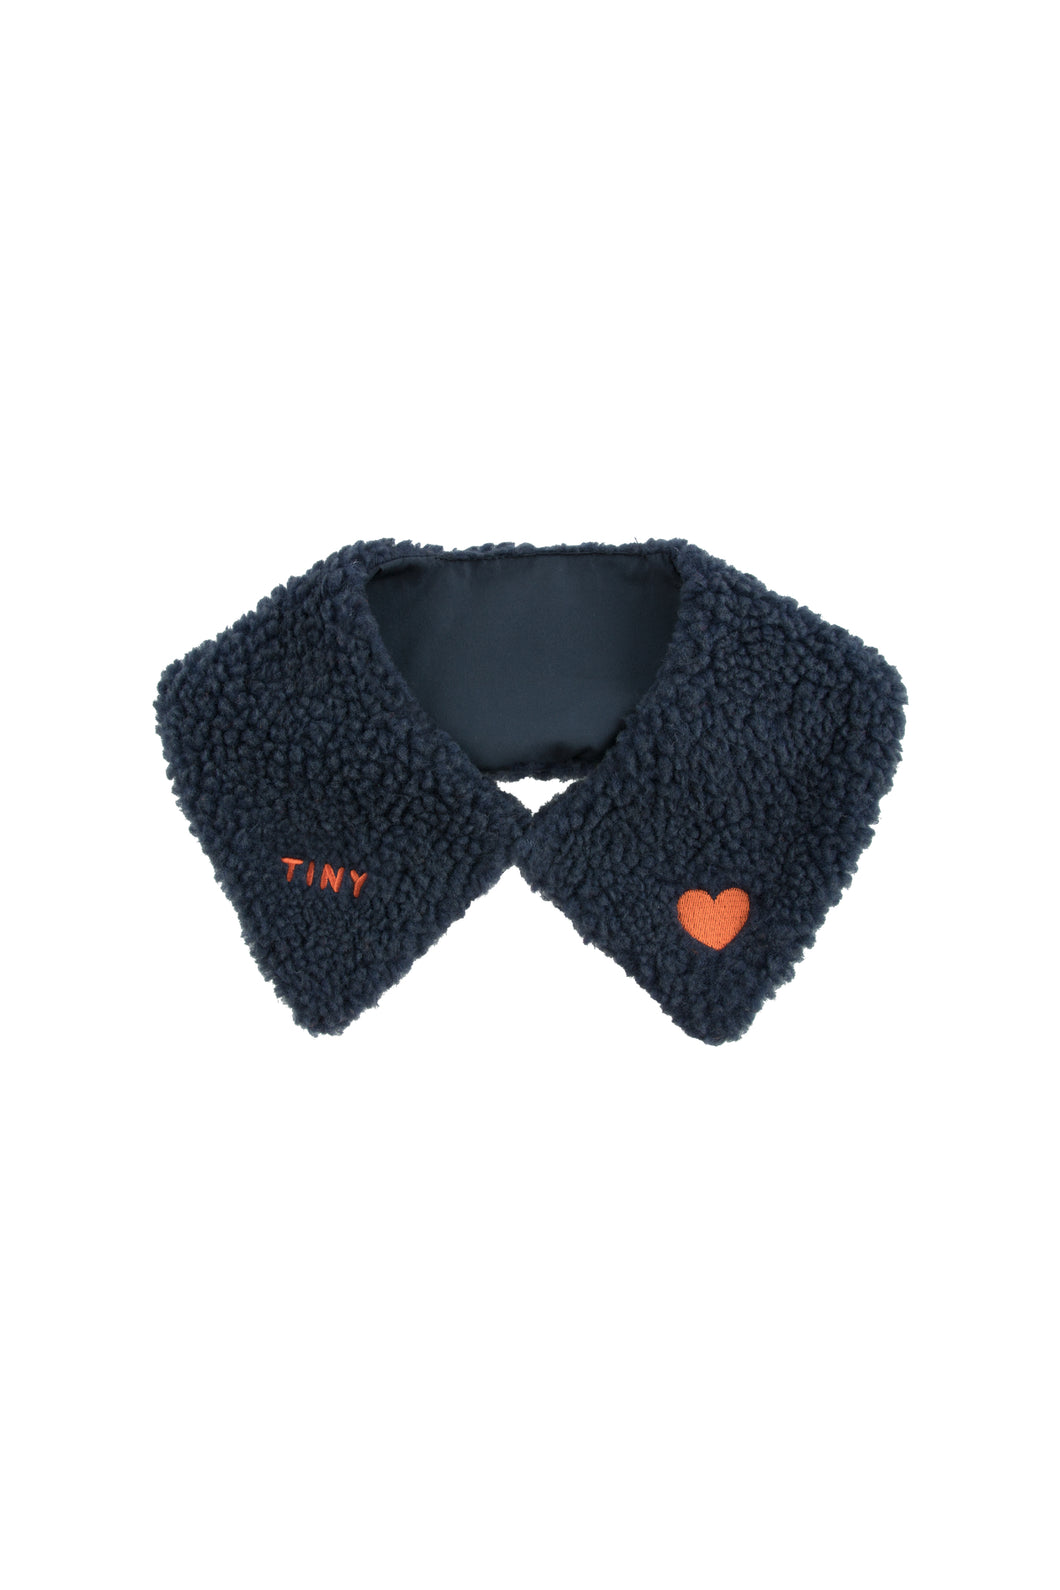 Tinycottons / Sherpa Collar / 'Tiny' / Navy